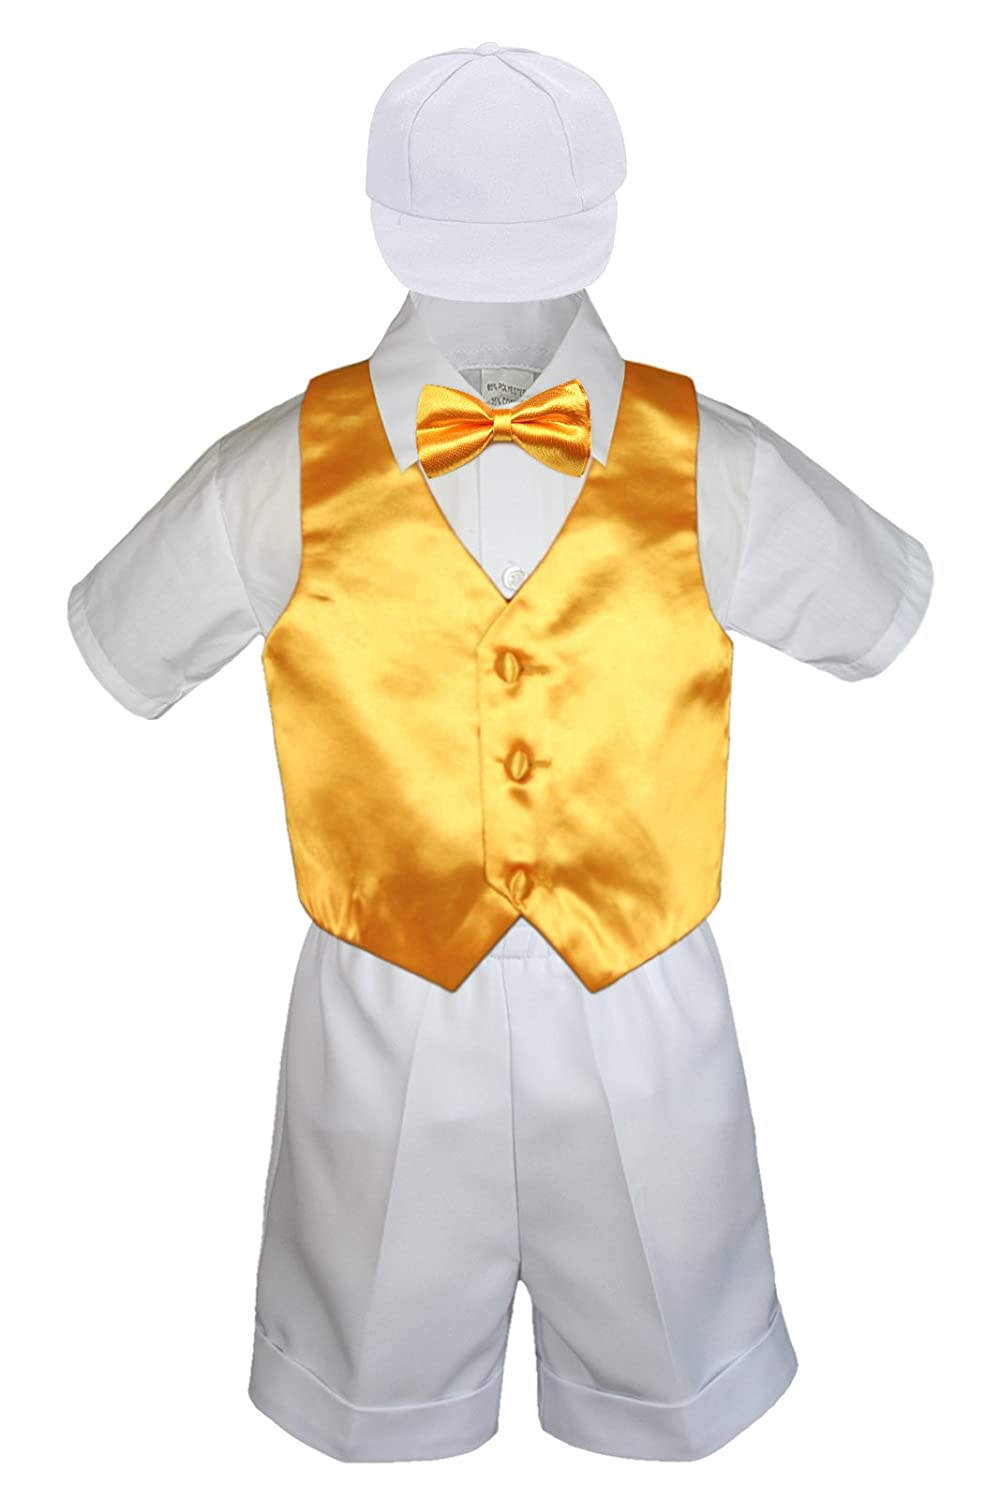 5pc Baby Toddlers Boys Satin Ivory Vest Bow Tie Sets White Suits S-4T S: 0-6 months